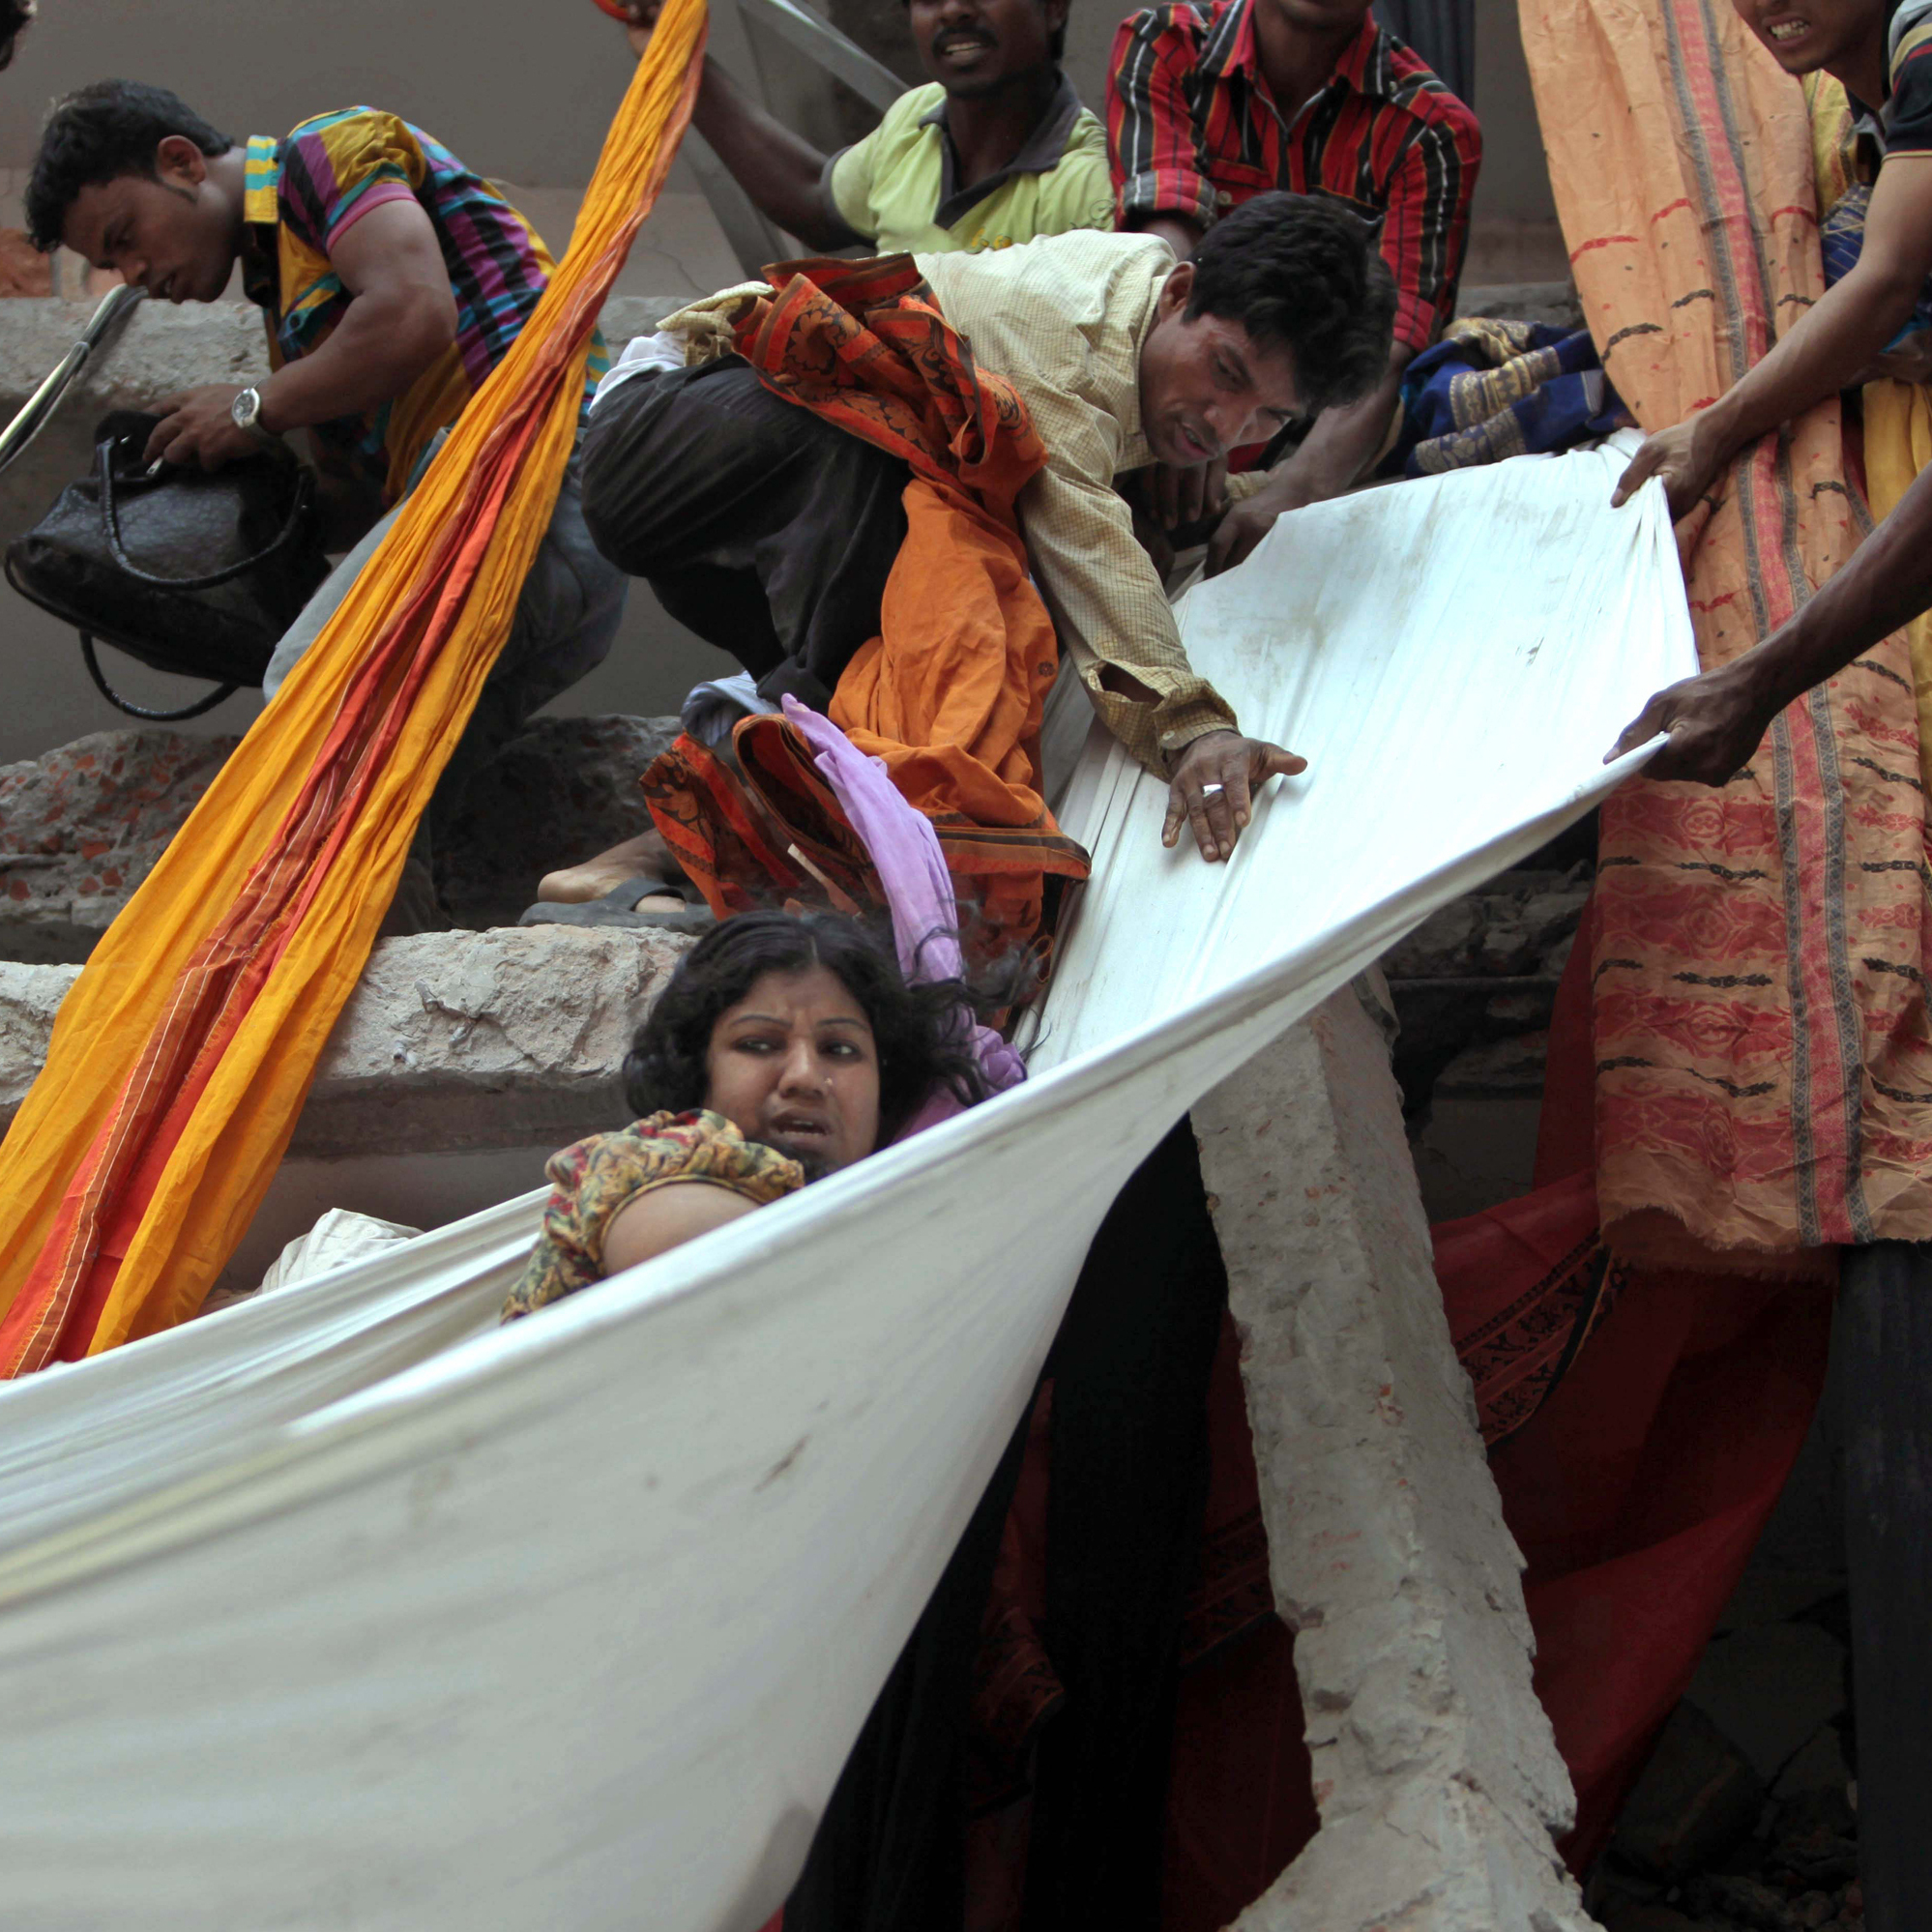 Rescue workers use pieces of clothes to bring down a survivor after an eight-story building housing several garment factories collapsed Wednesday in Savar, near Dhaka, Bangladesh.